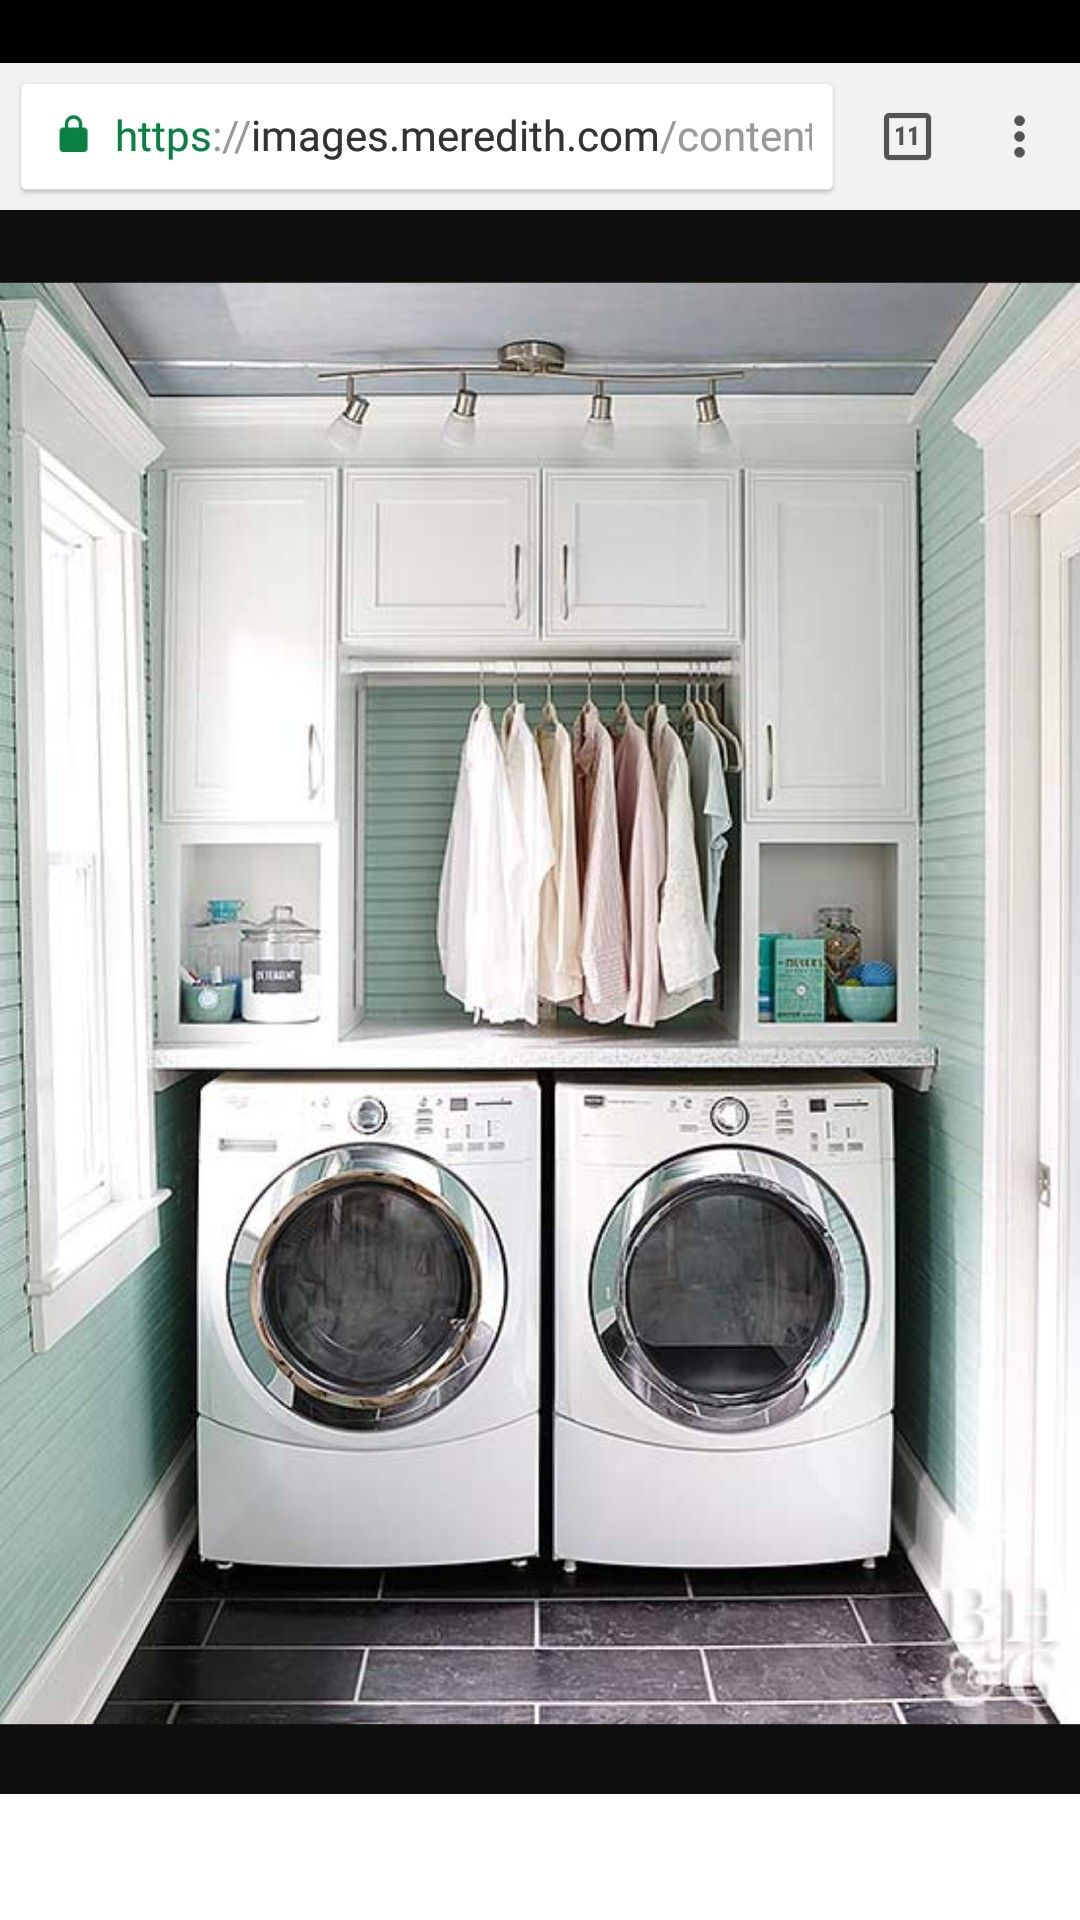 Pin By Emily On Home Decor - Pinterest - Laundry